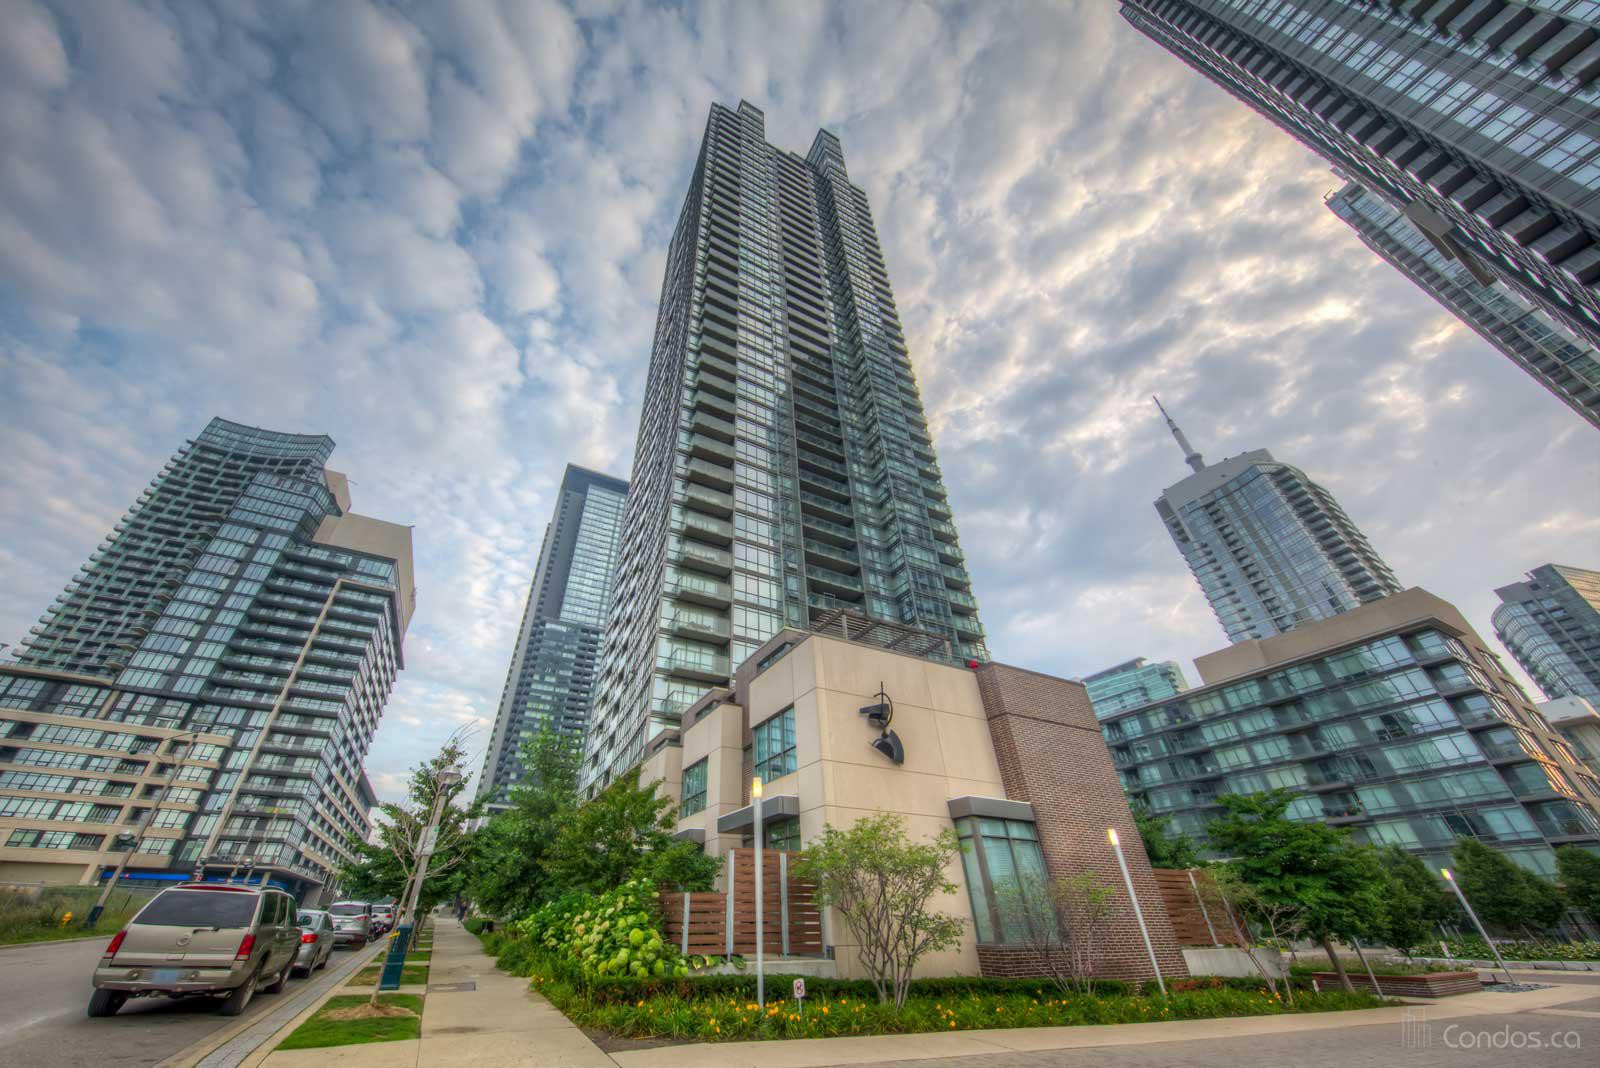 N1 | N2 - CityPlace at 15 Fort York Blvd, Toronto 0